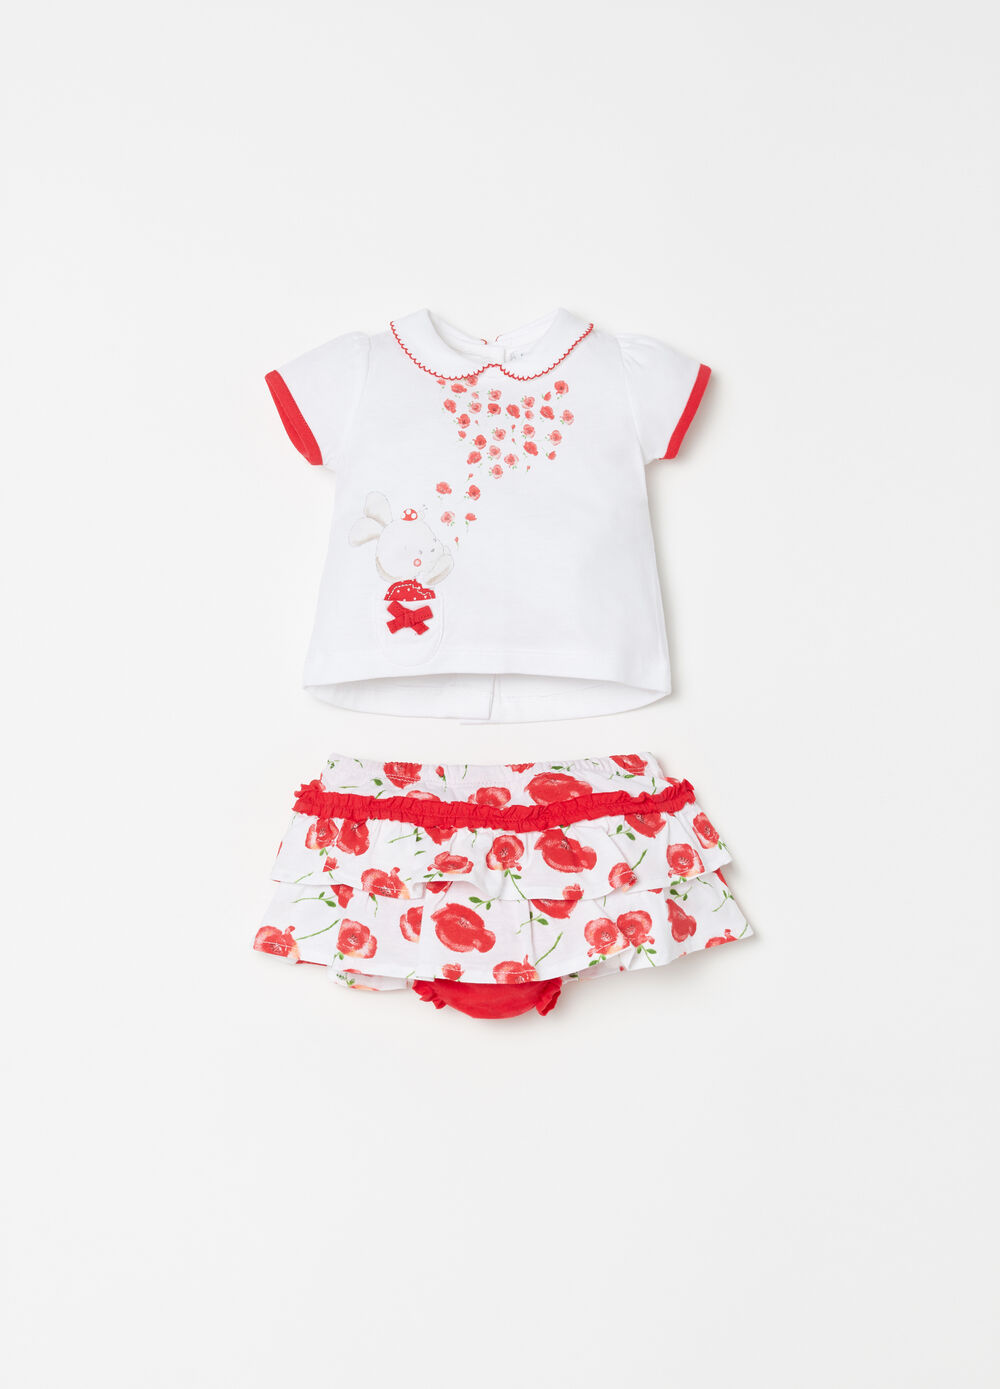 Printed T-shirt and skirt with floral flounces set